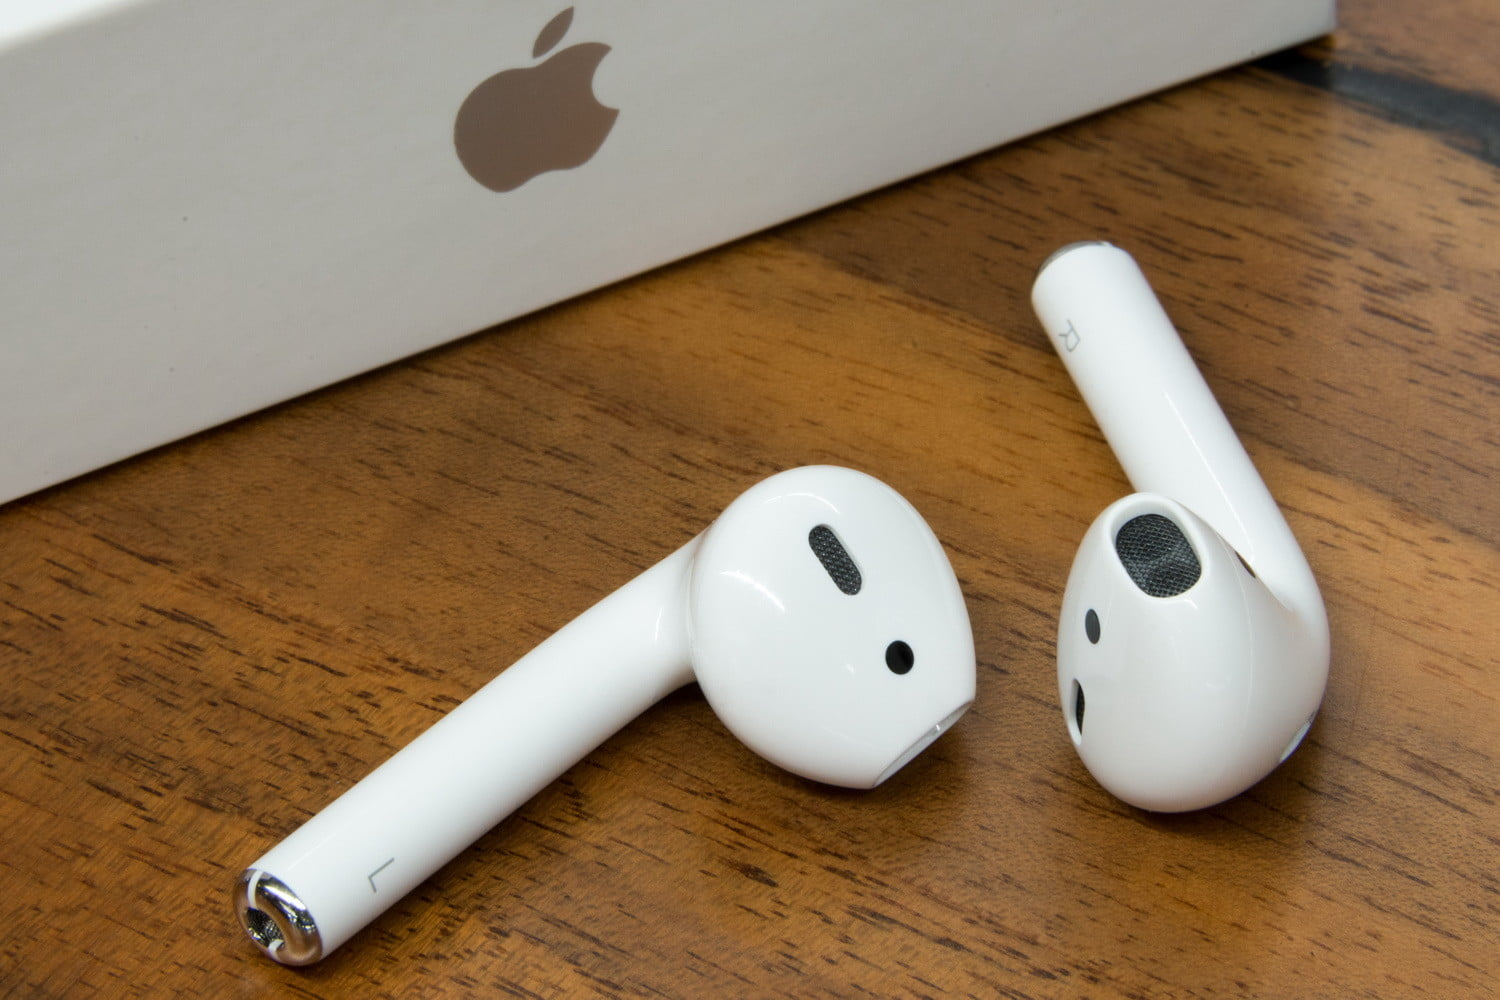 Apple AirPods Live Listen Feature Misused to Spy on